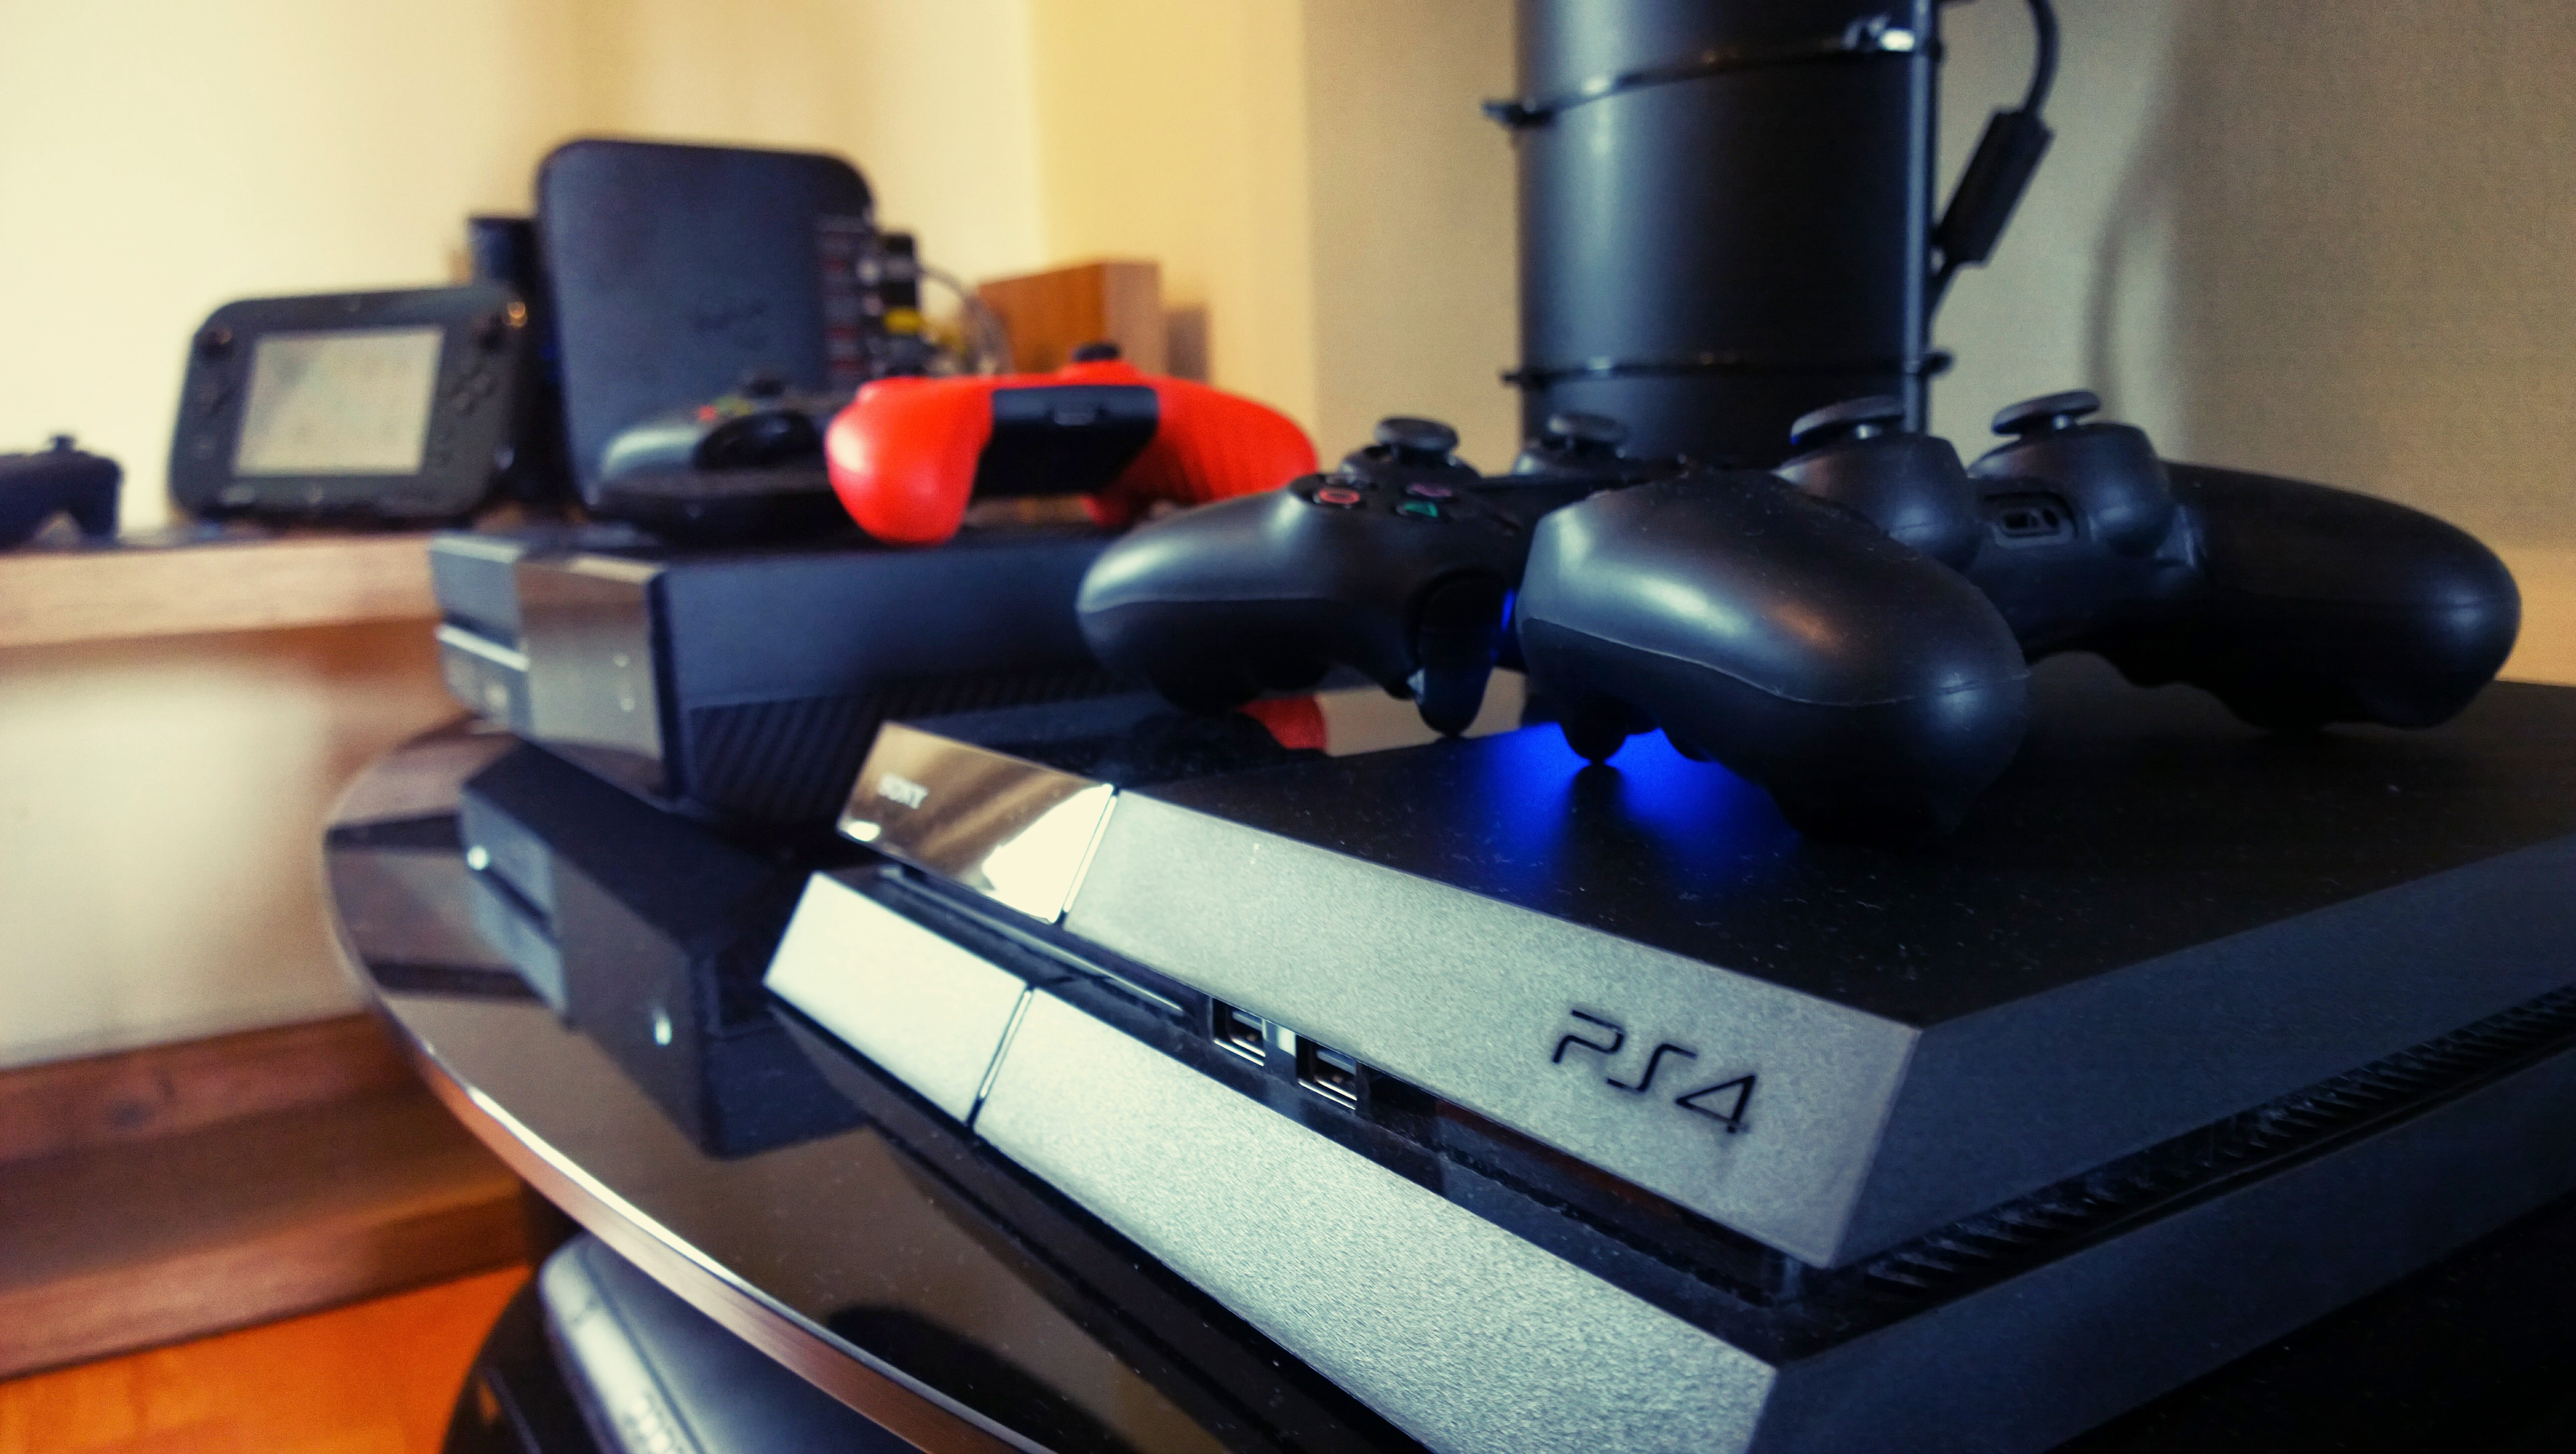 How many consoles do you have?